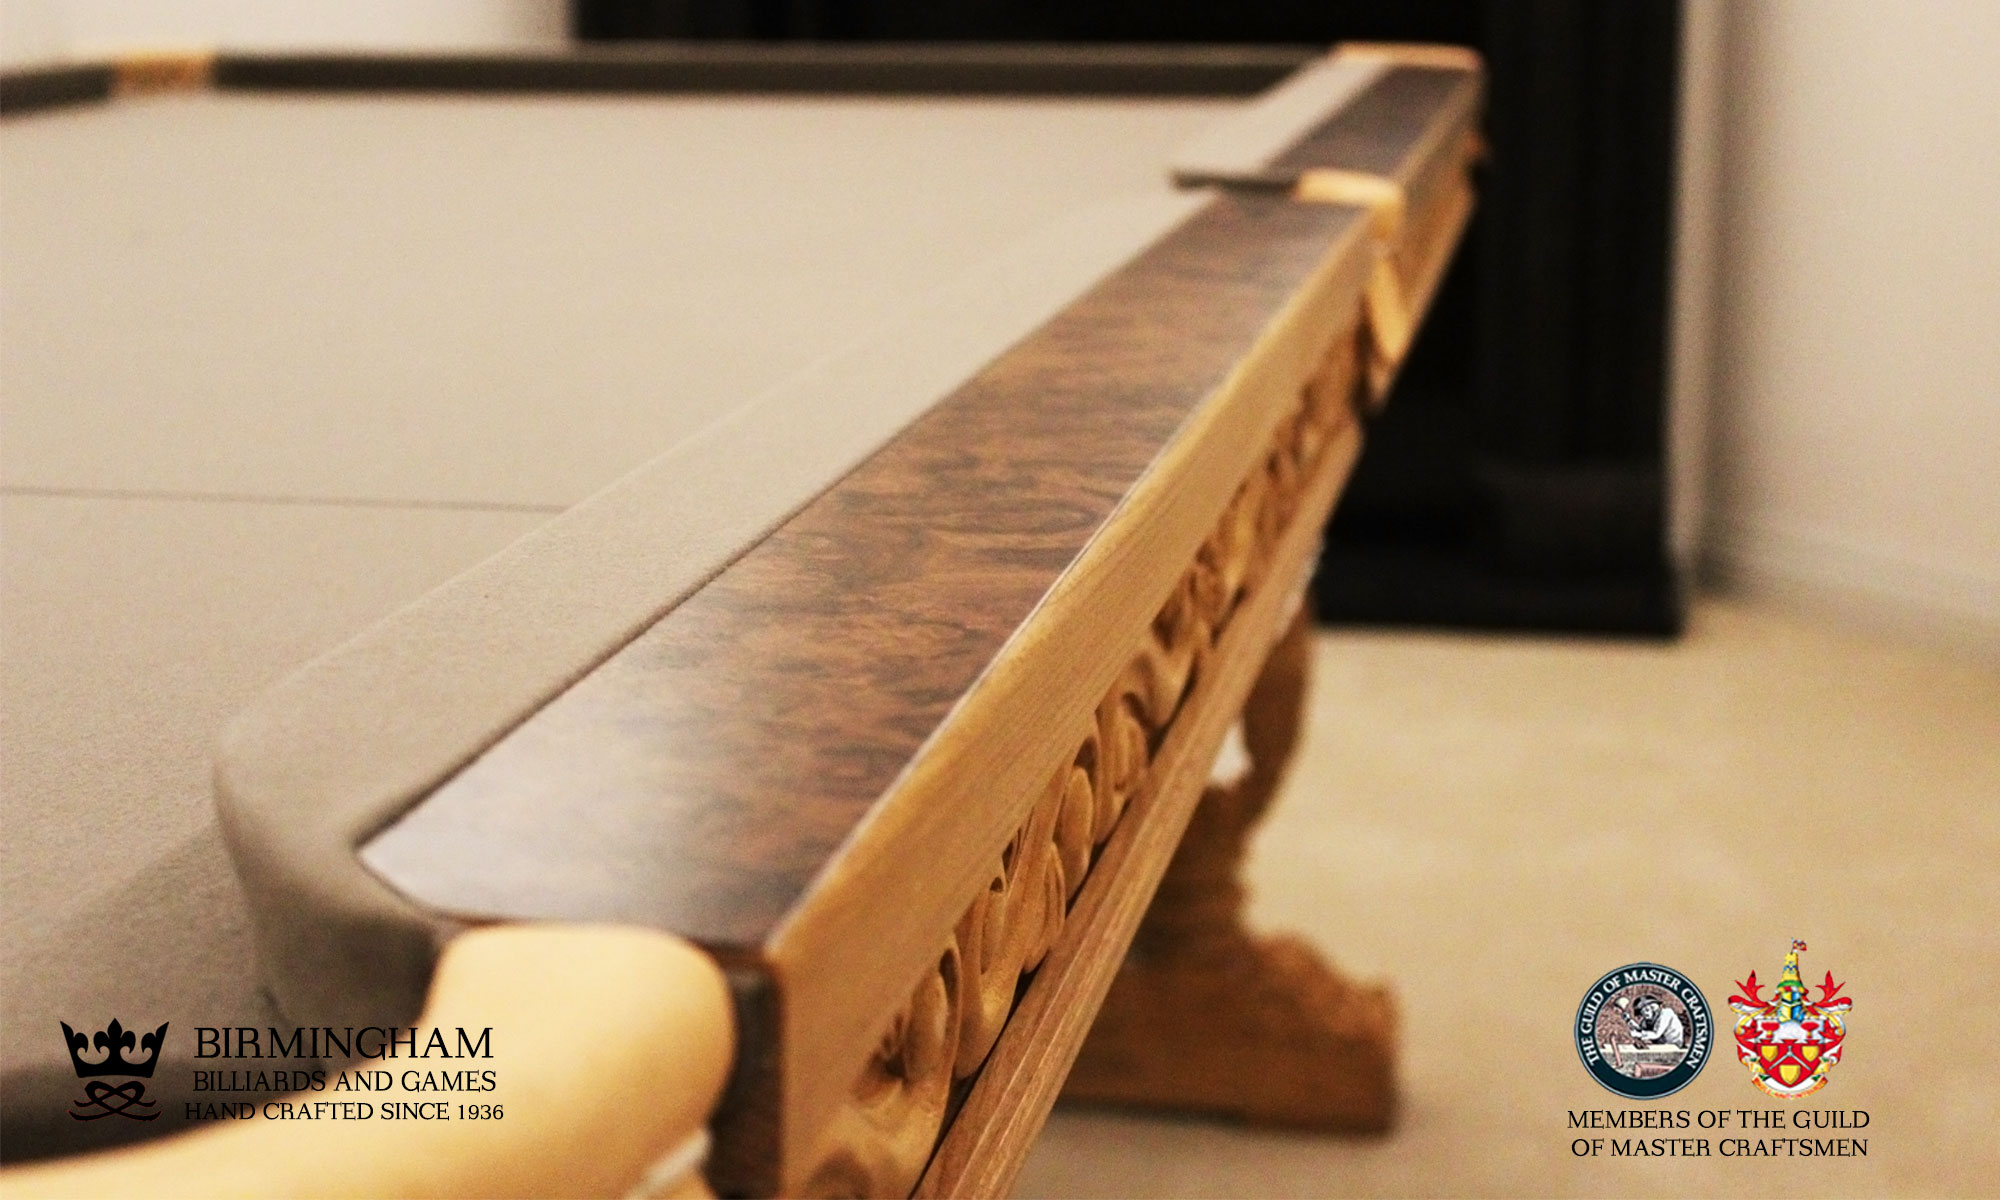 Balmoral hand carved snooker table